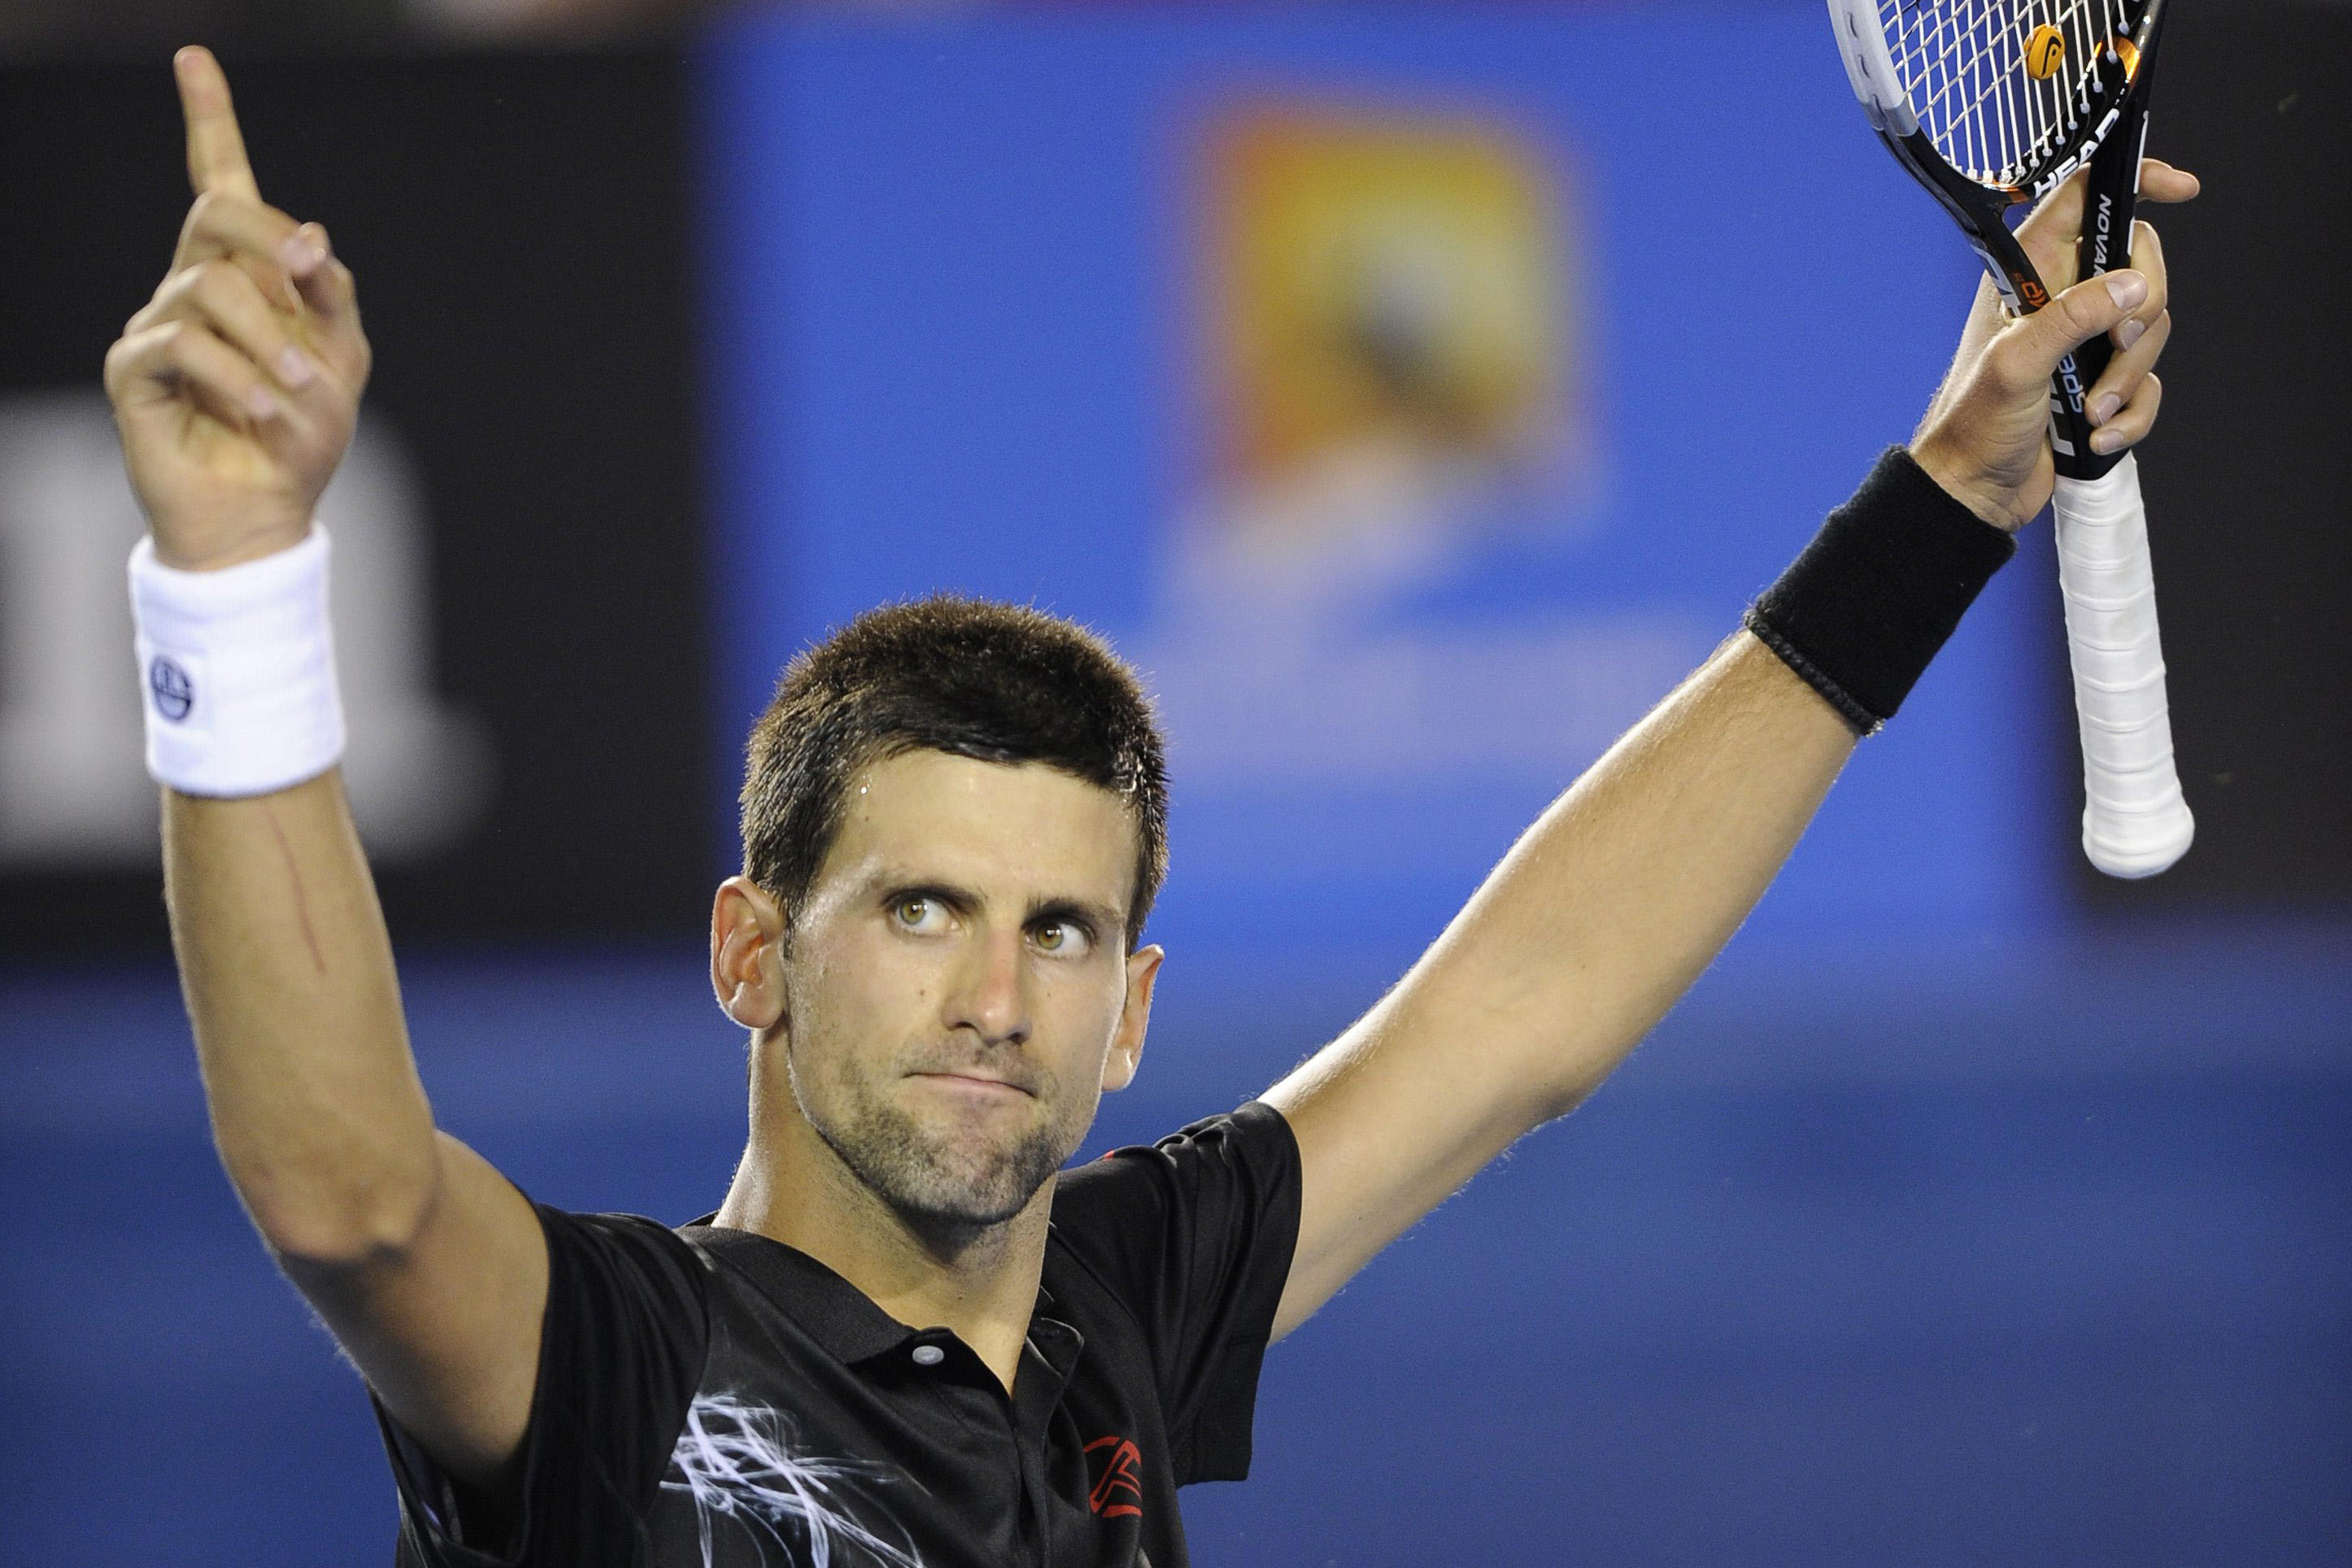 Novak Djokovic of Serbia celebrates after defeating Lleyton Hewitt in Melbourne, Australia, on Jan. 24, 2012. THE ASSOCIATED PRESS/Andrew Brownbill